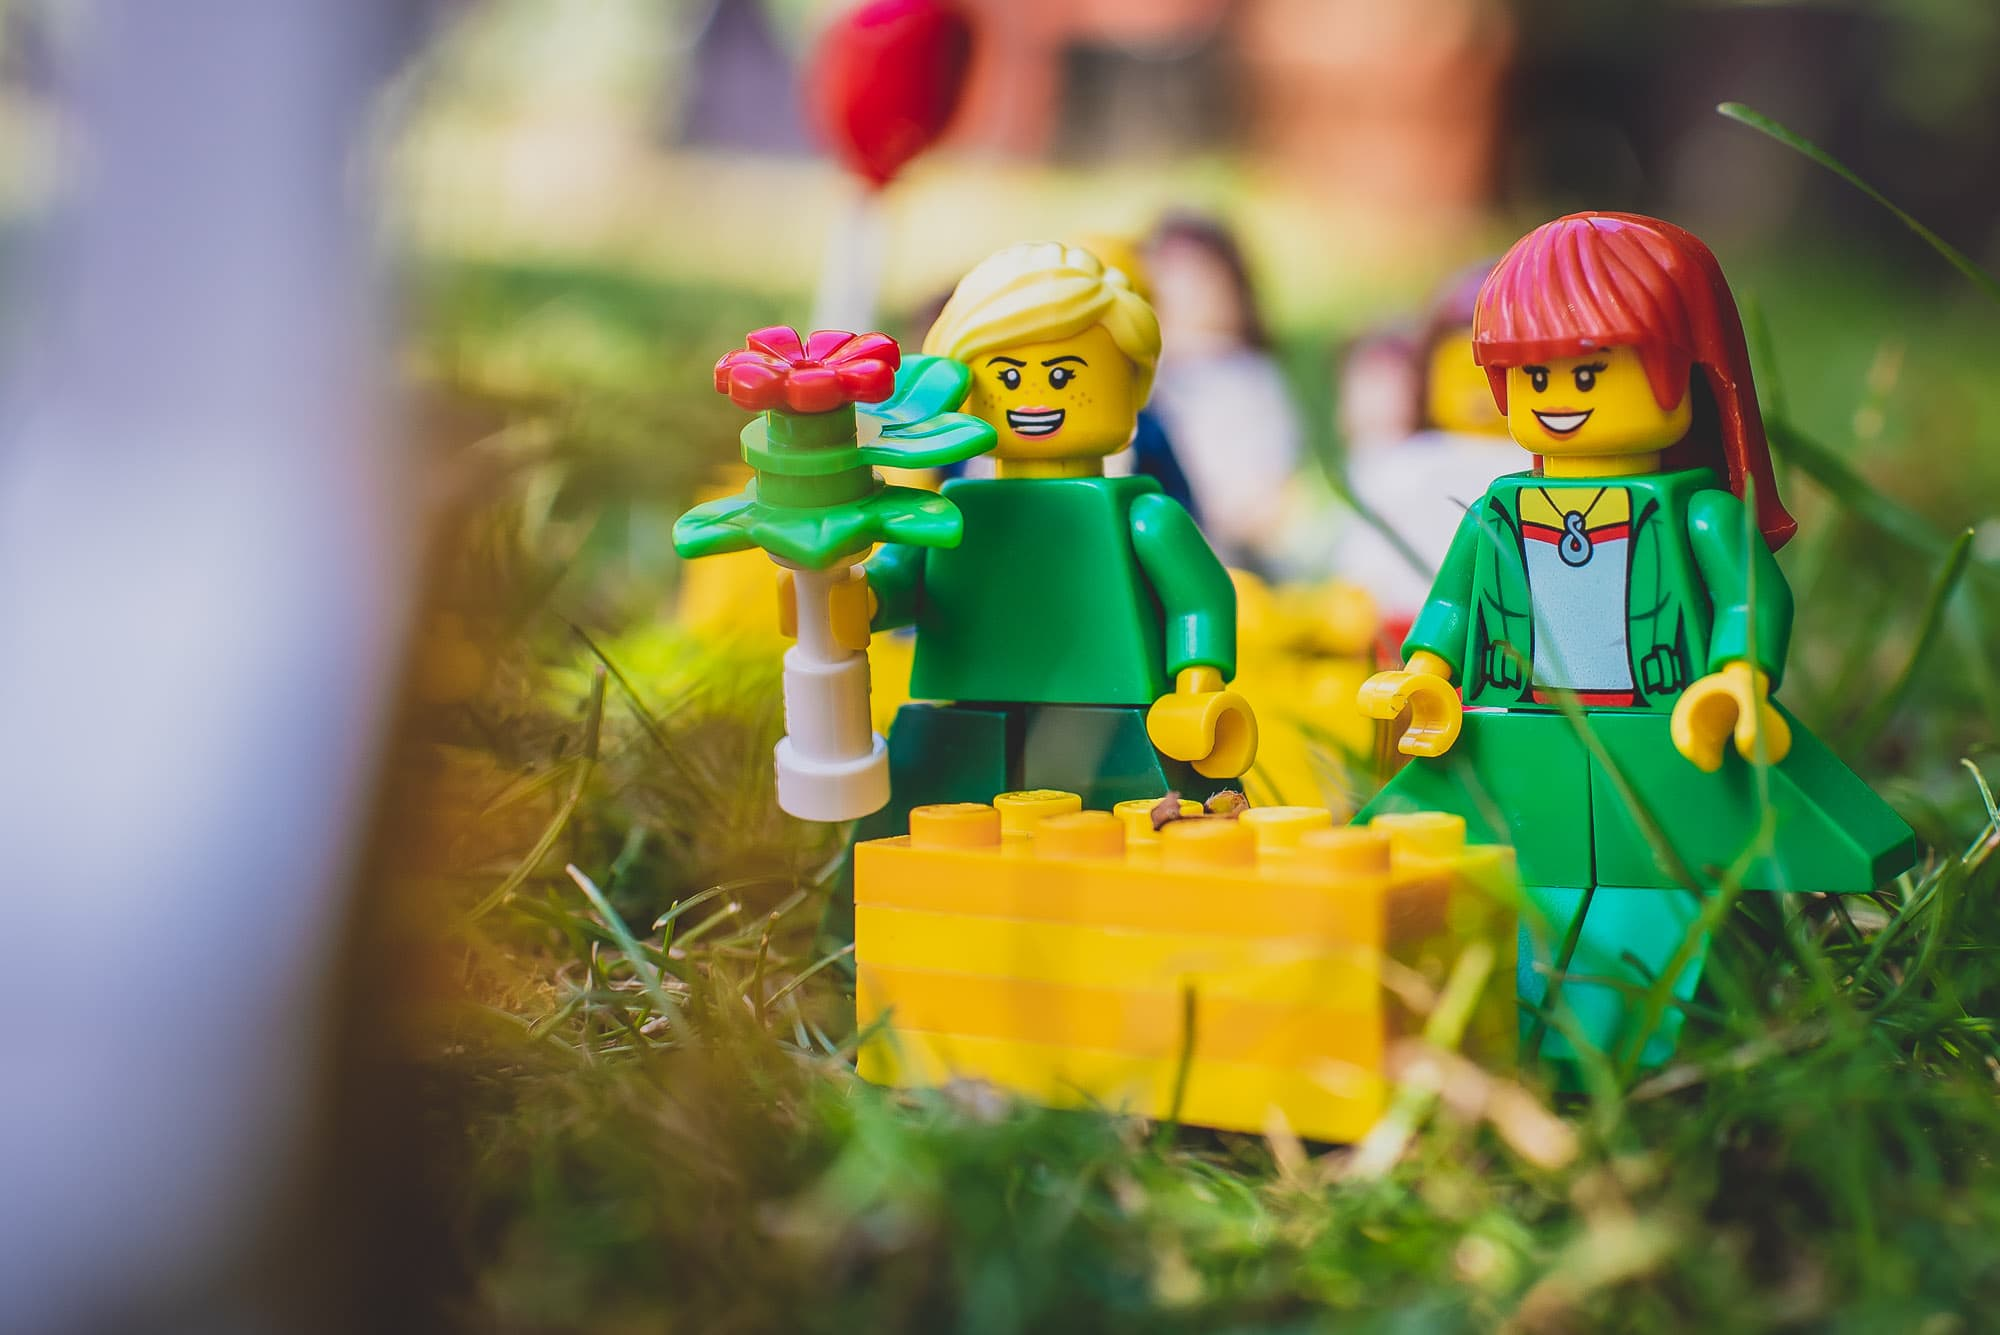 Bridesmaids at the Lego wedding look on smiling